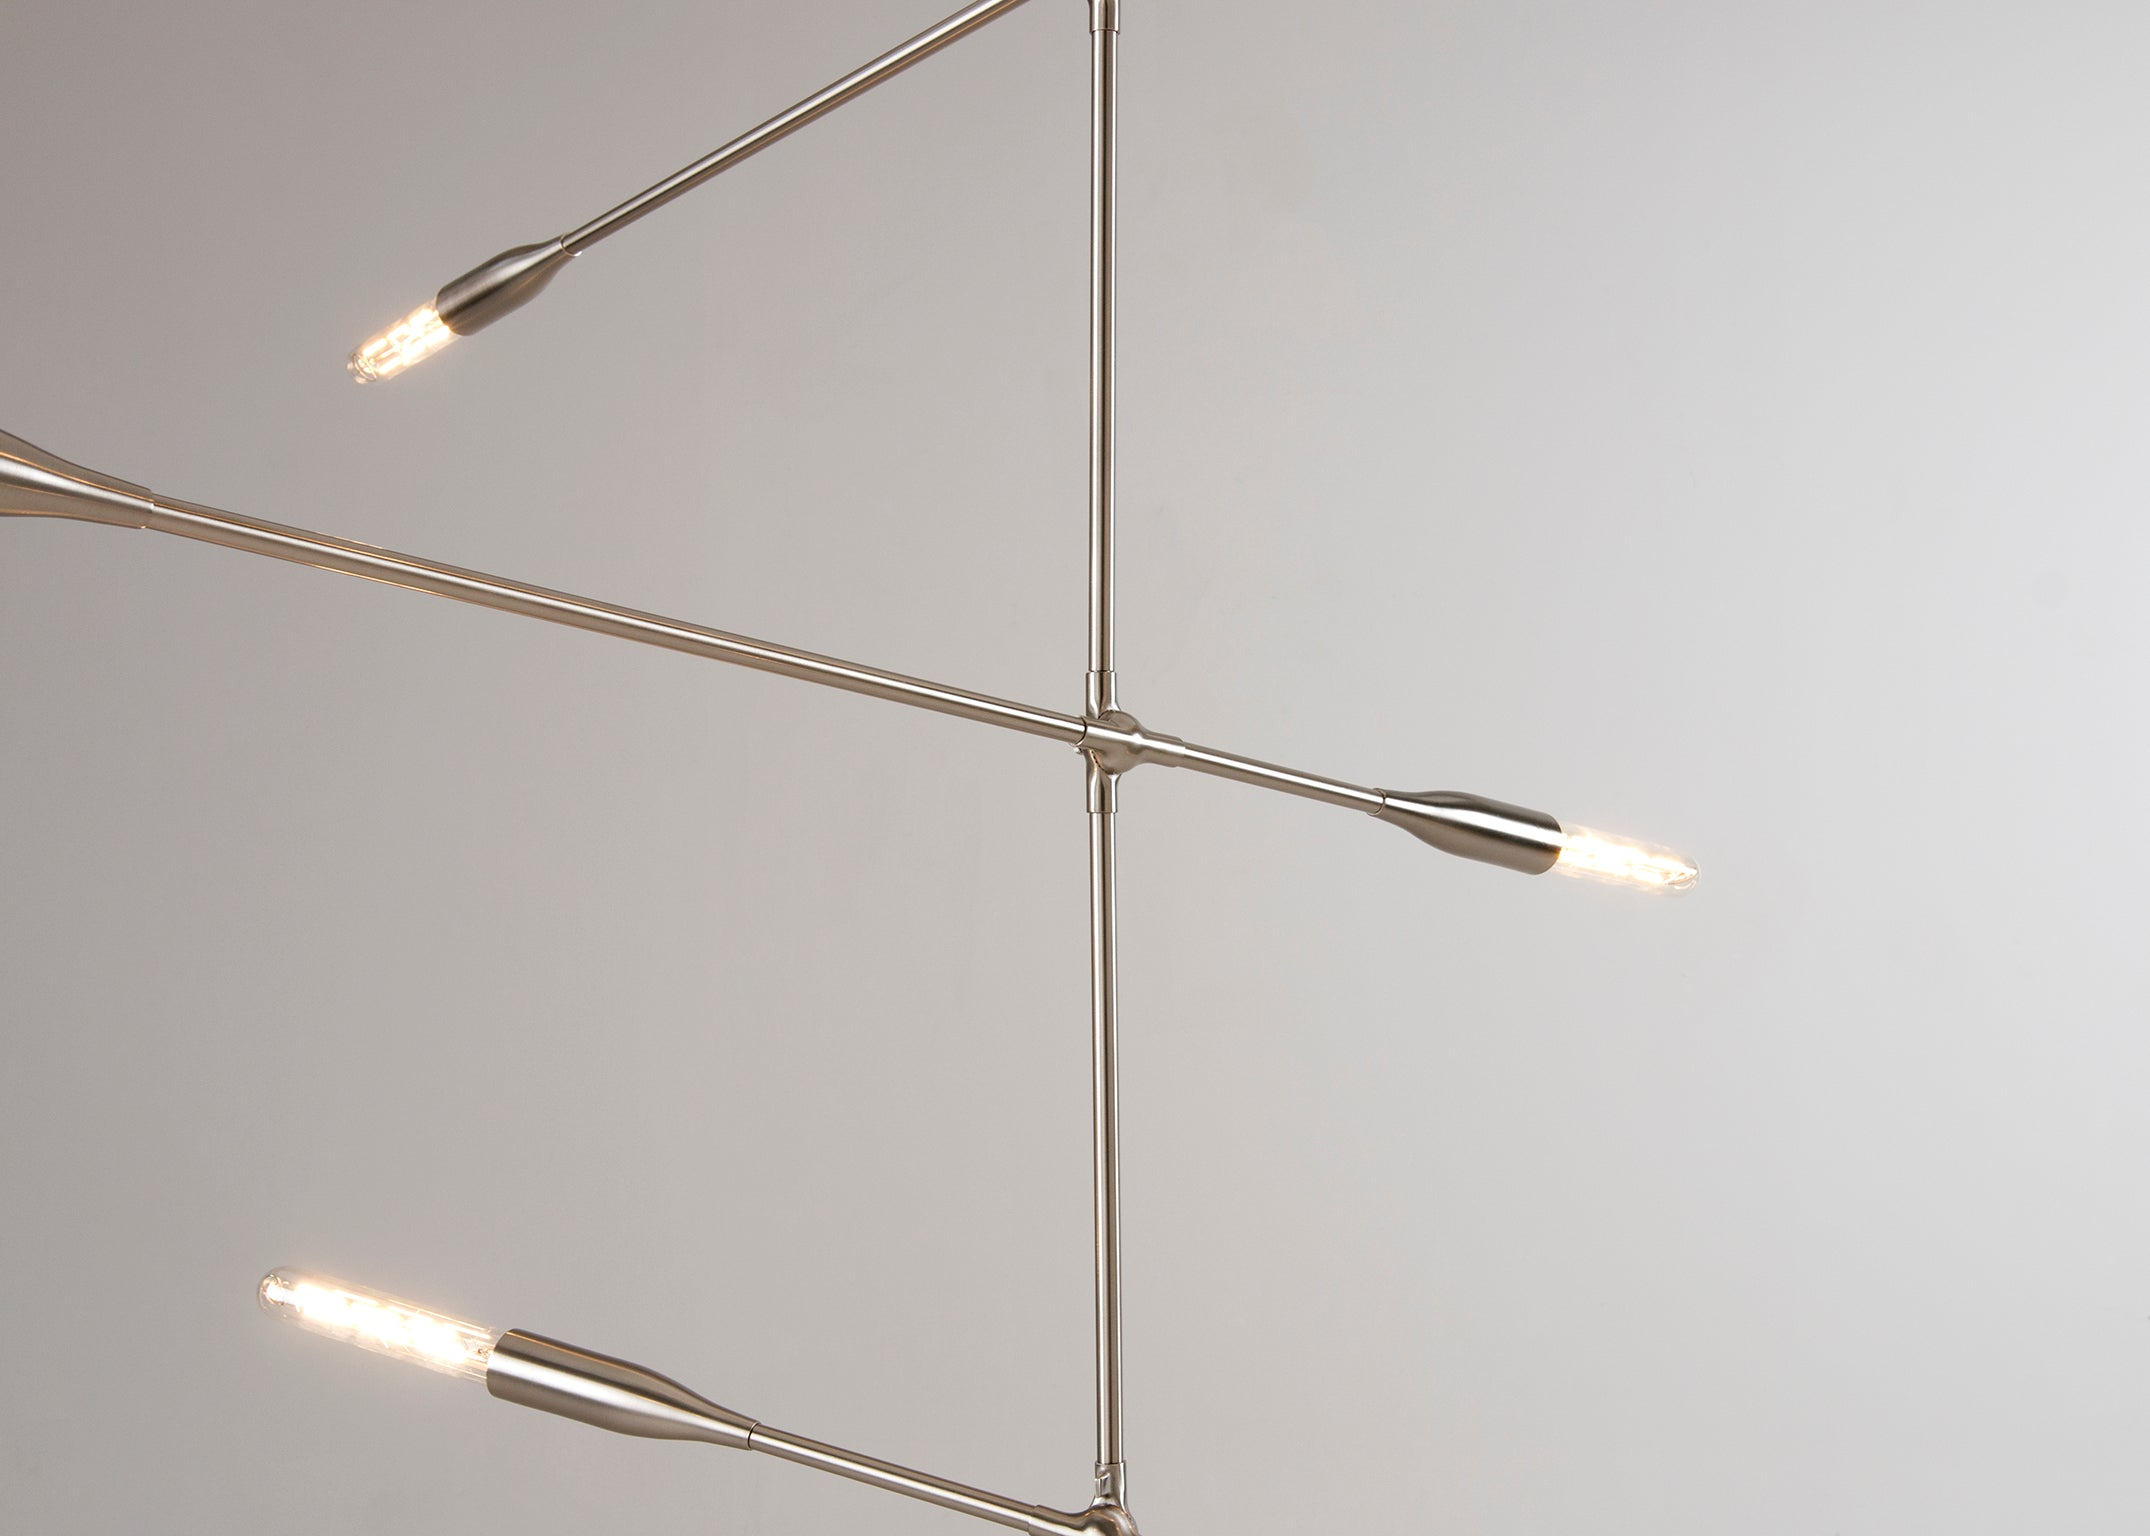 Sorenthia 3-Arm linear modern light in Brushed Nickel by Studio DUNN Close Up on grey background